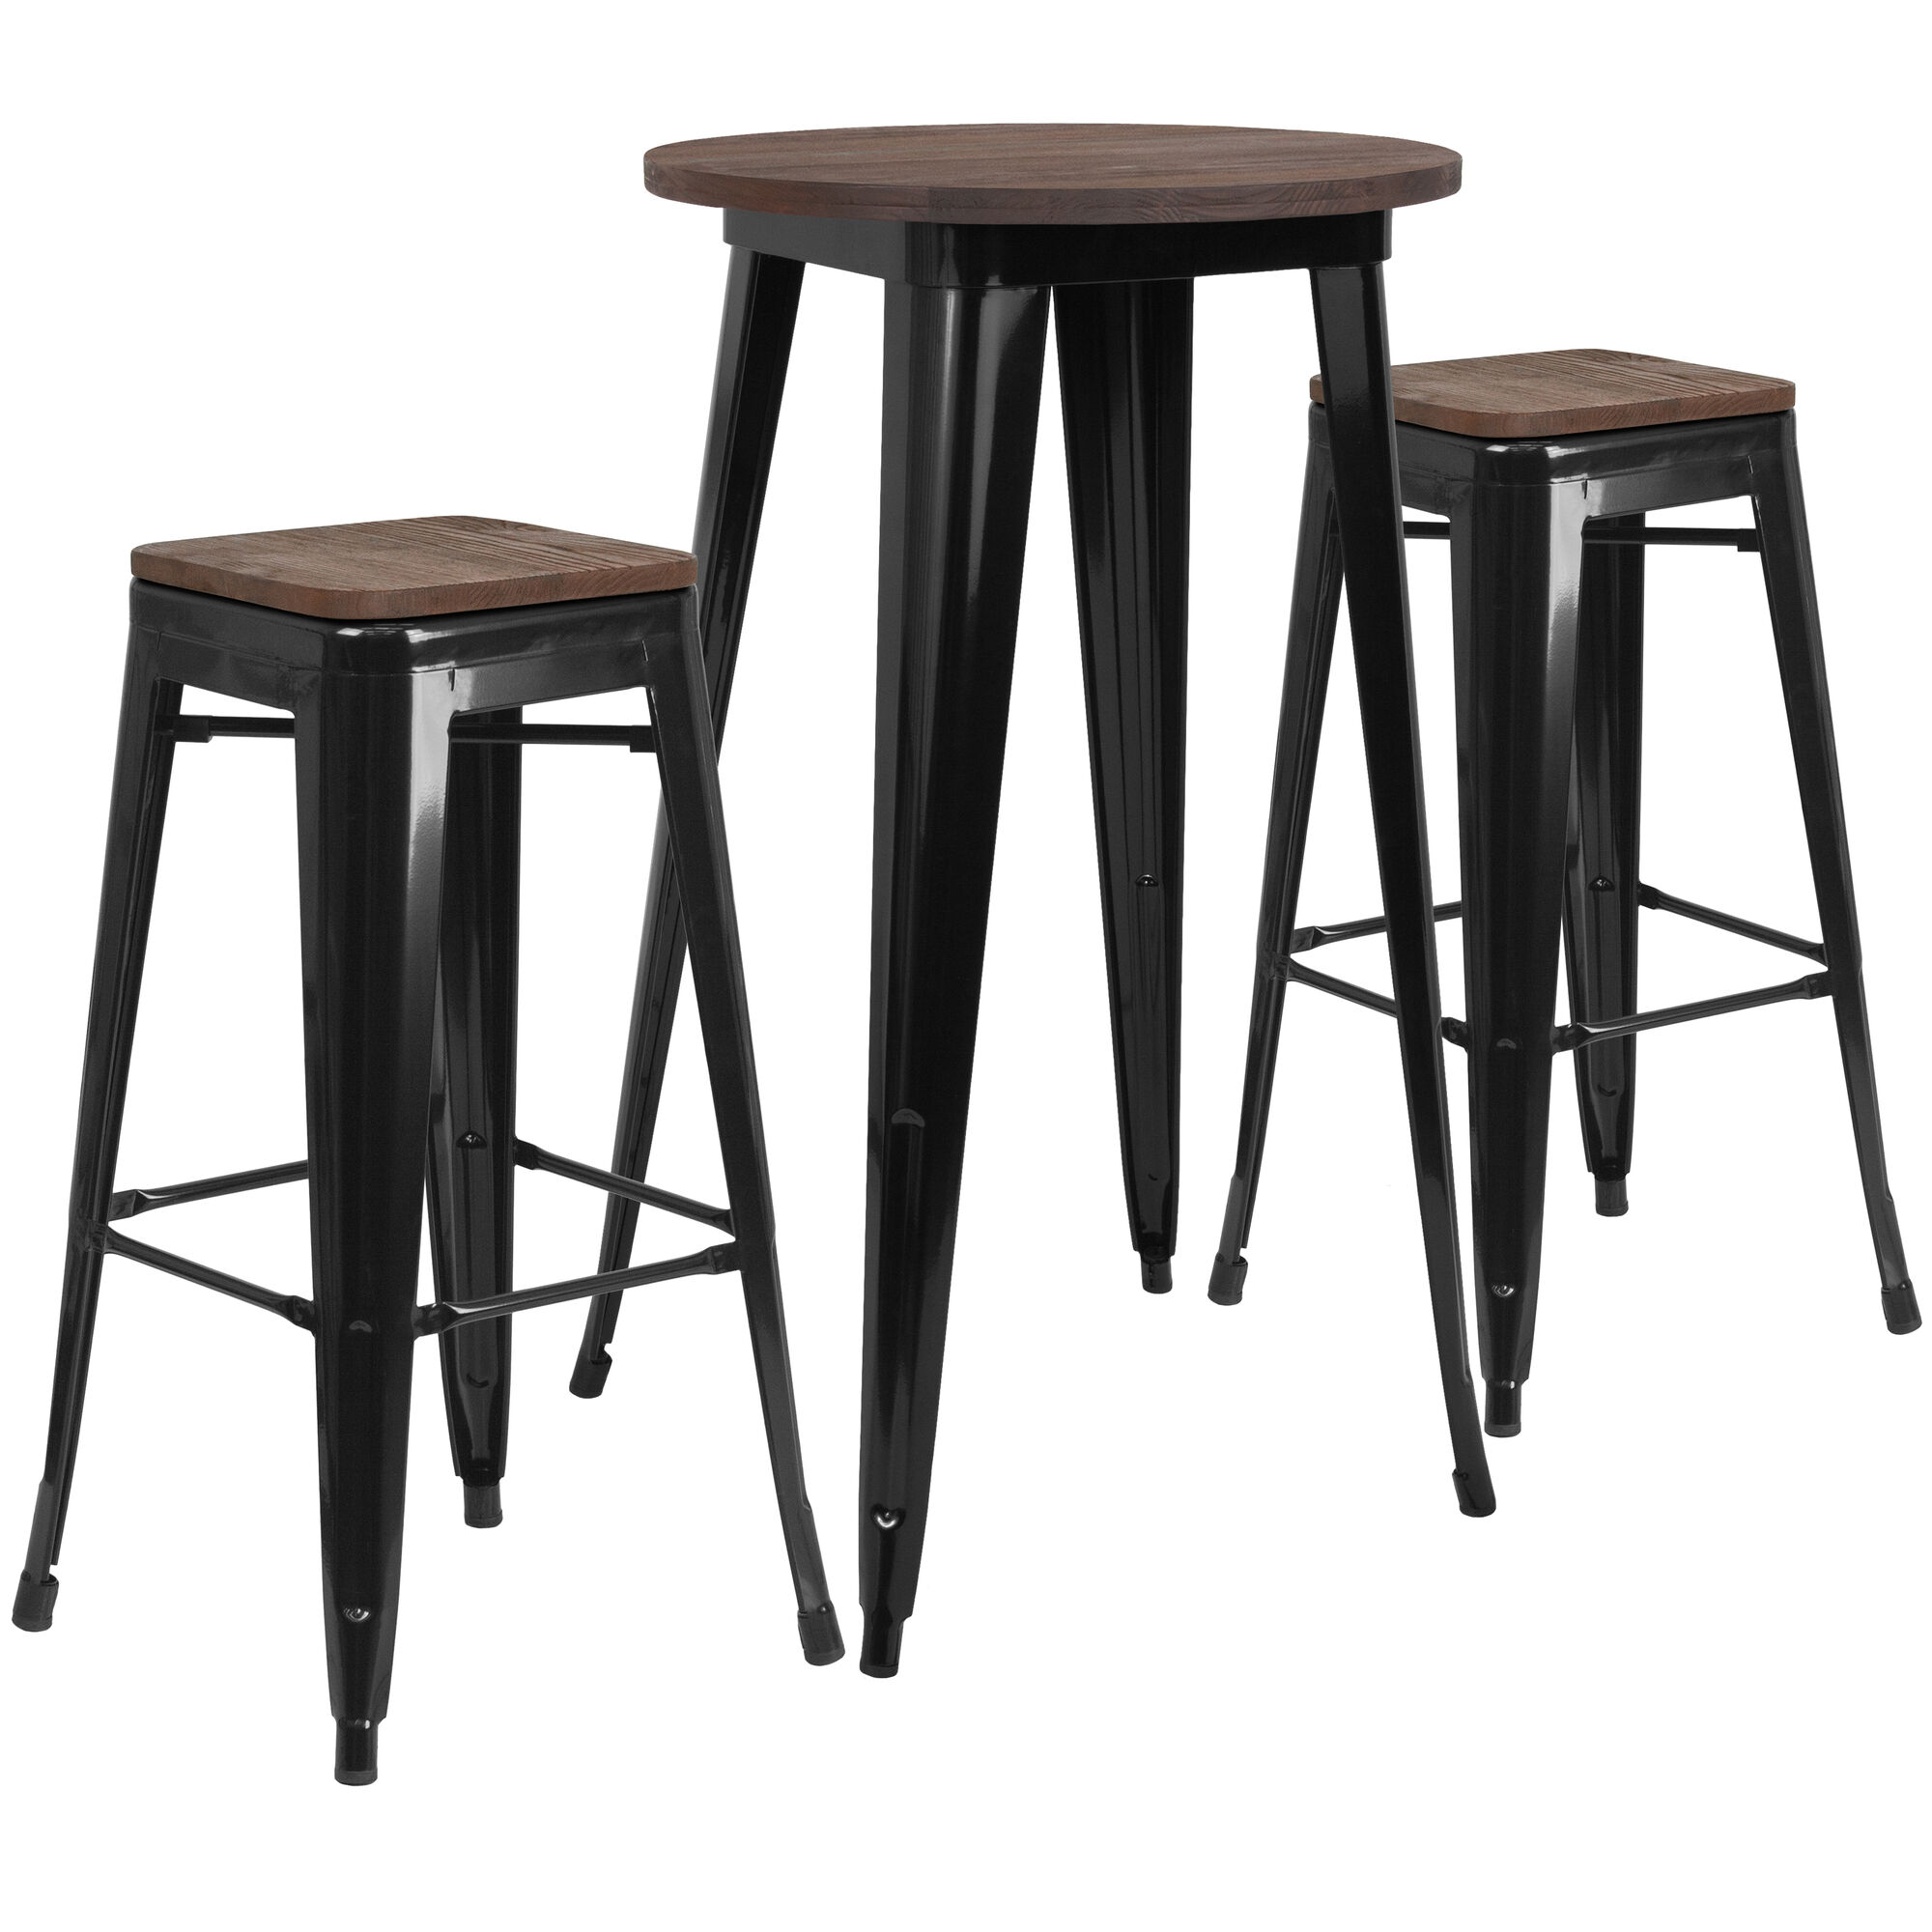 Wondrous 24 Round Black Metal Bar Table Set With Wood Top And 2 Backless Stools Ibusinesslaw Wood Chair Design Ideas Ibusinesslaworg